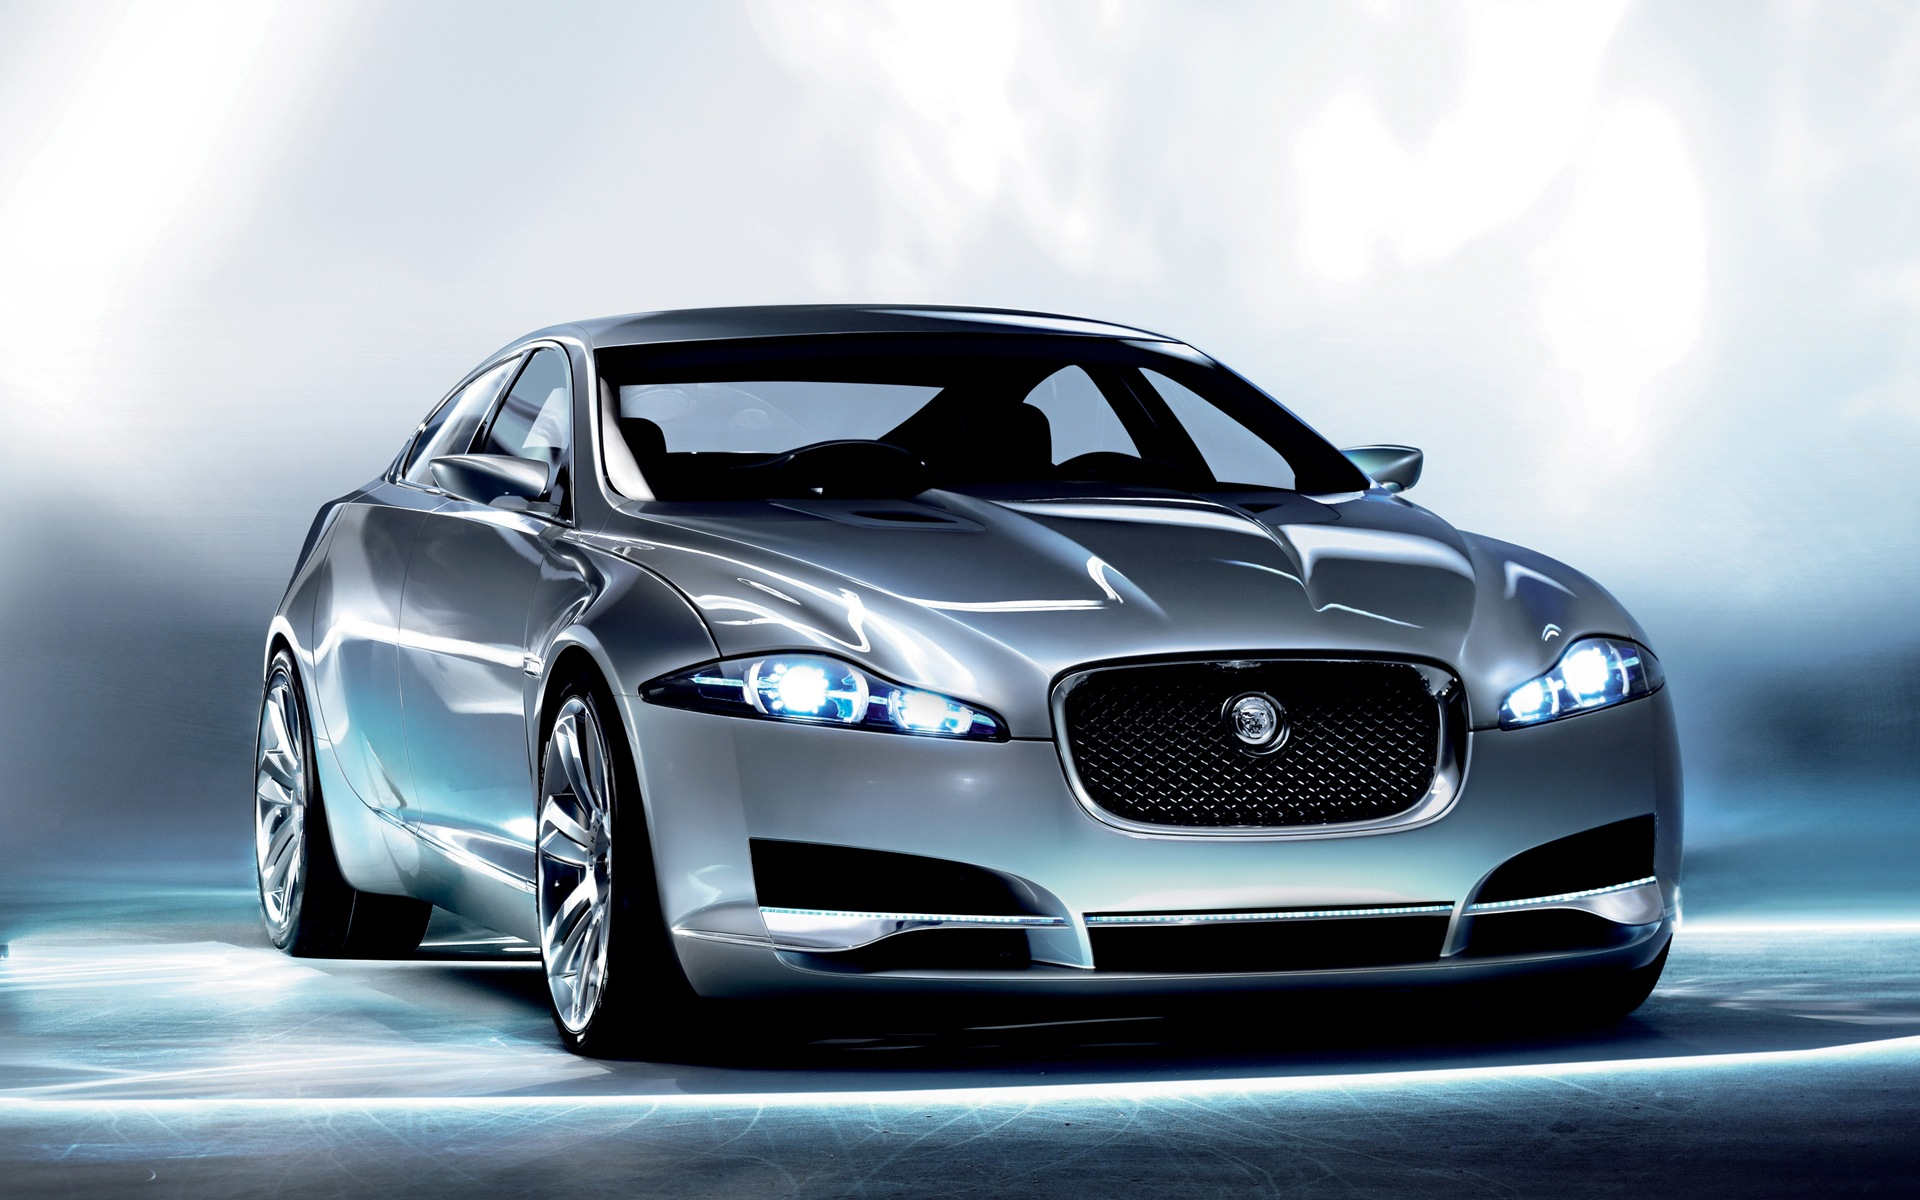 Jaguar Xf Wallpaper Hd Wallpapersafari